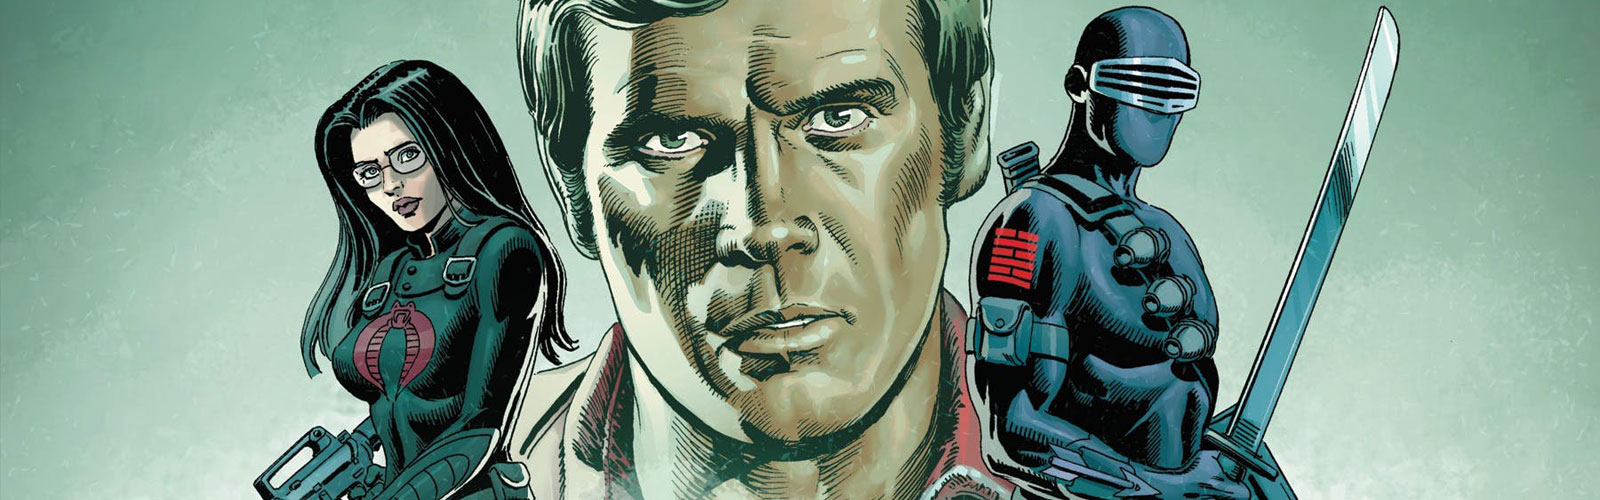 GI Joe vs Six Million Dollar Man #1